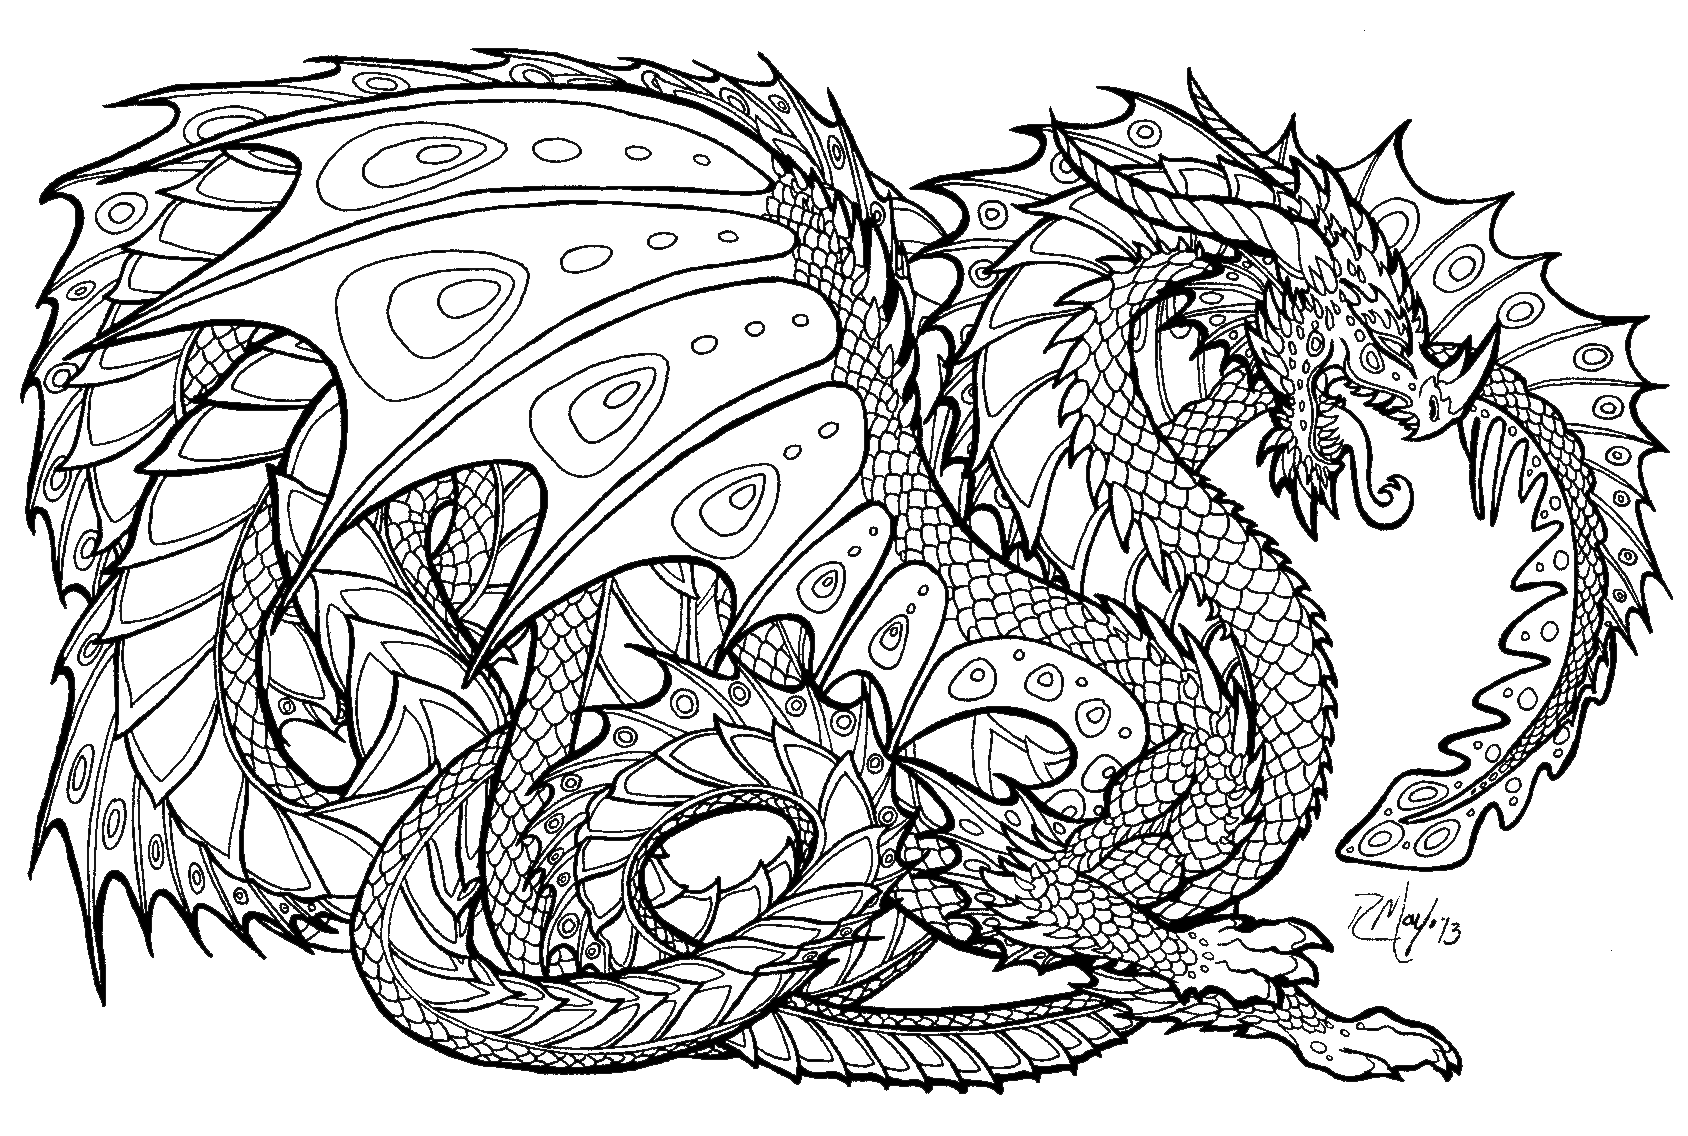 Adult Coloring Pages Endearing Dragon Coloring Pages For Adults  Just Colorings Decorating Inspiration